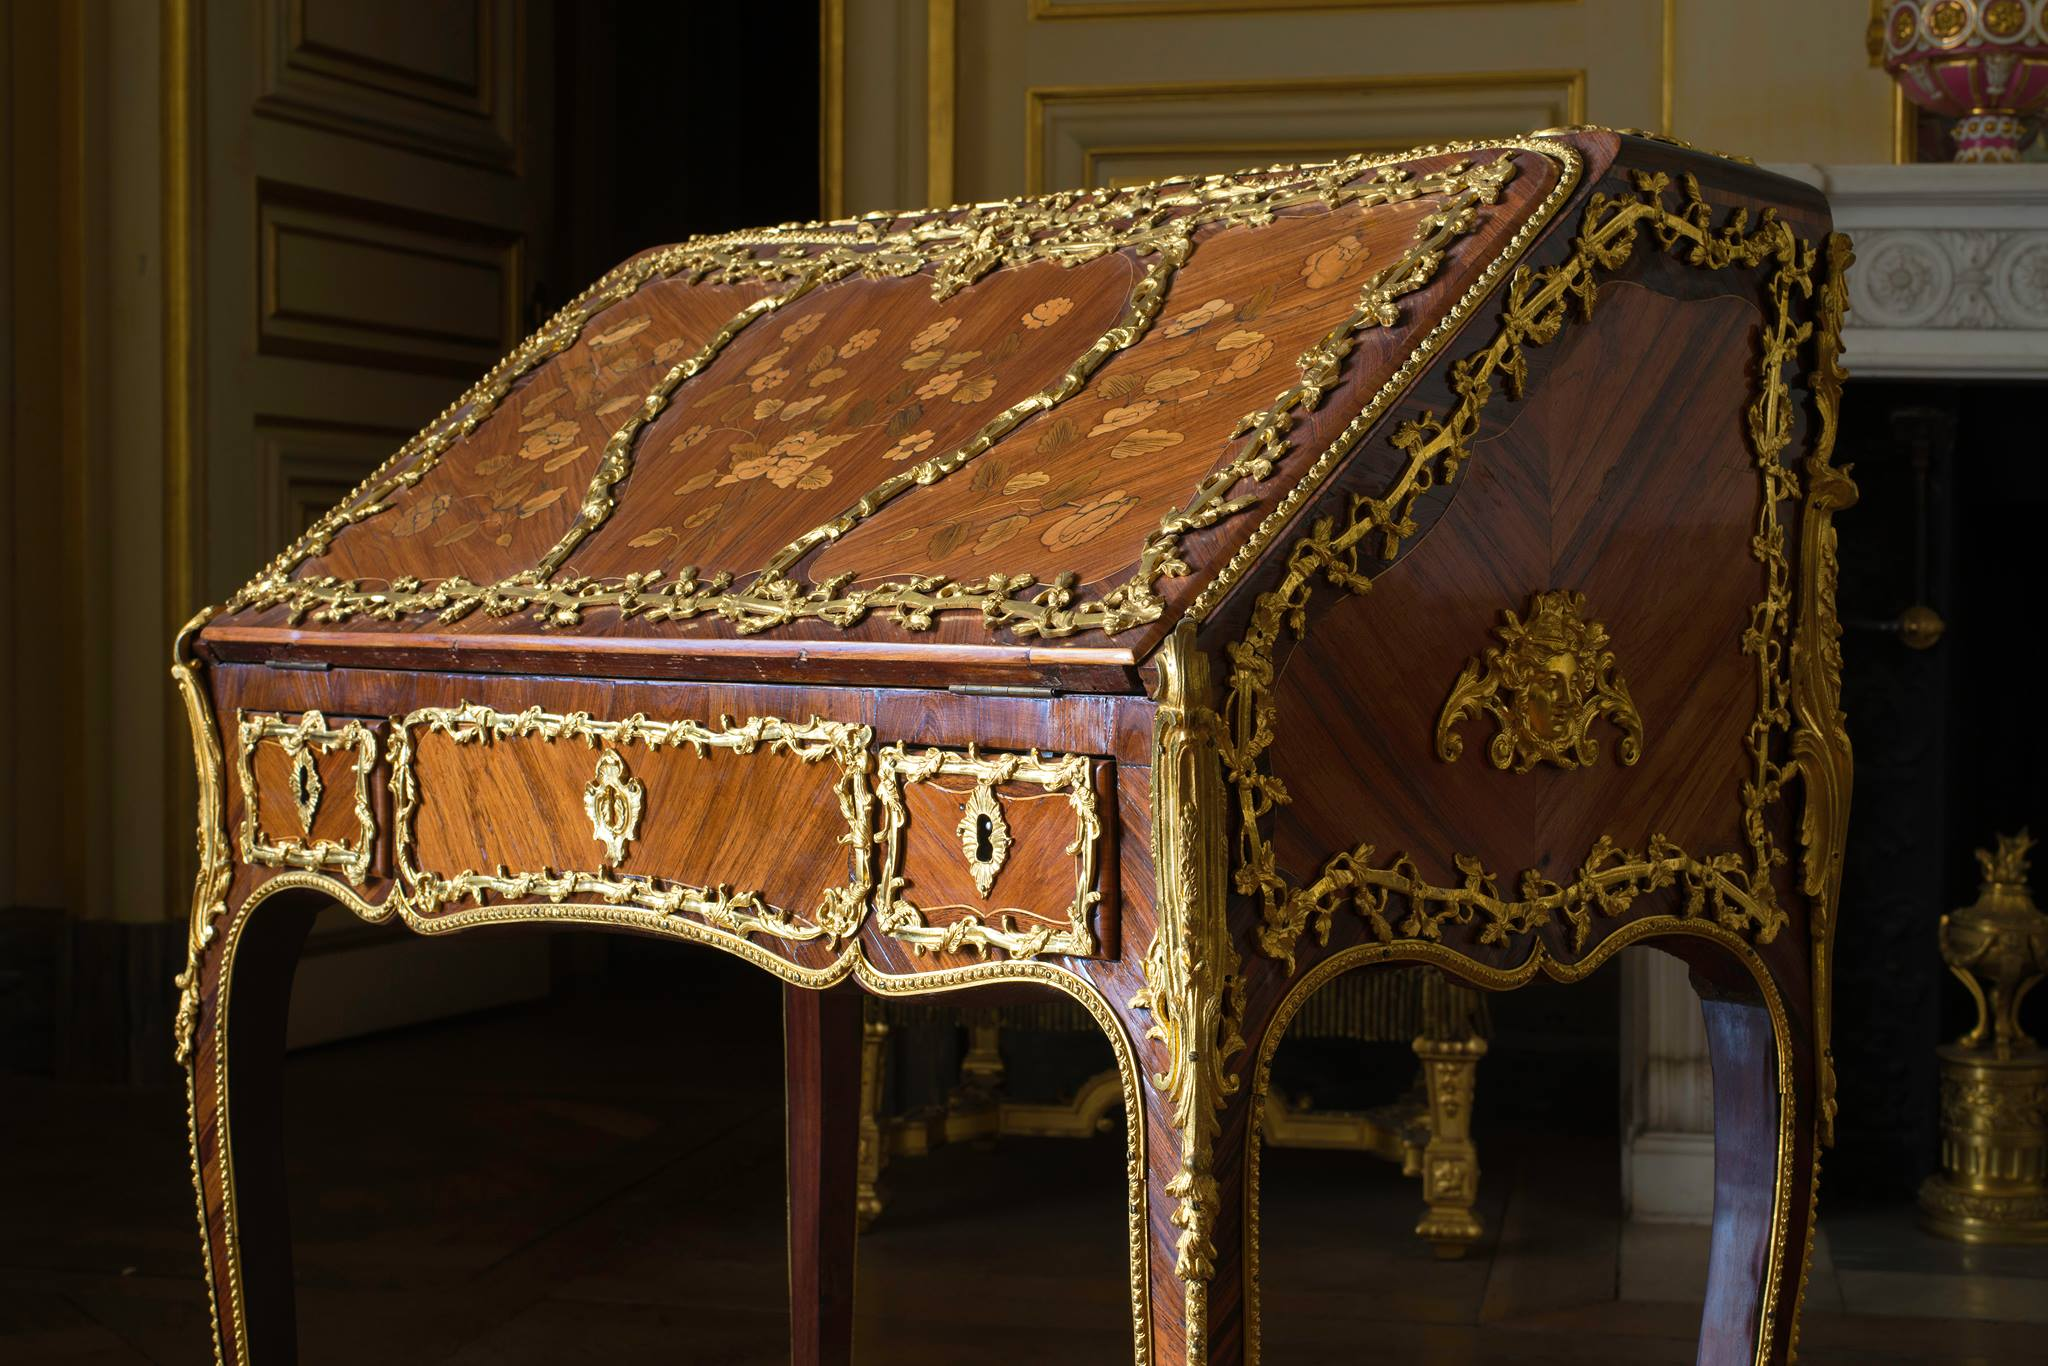 Ornate Jacobin desk (author)